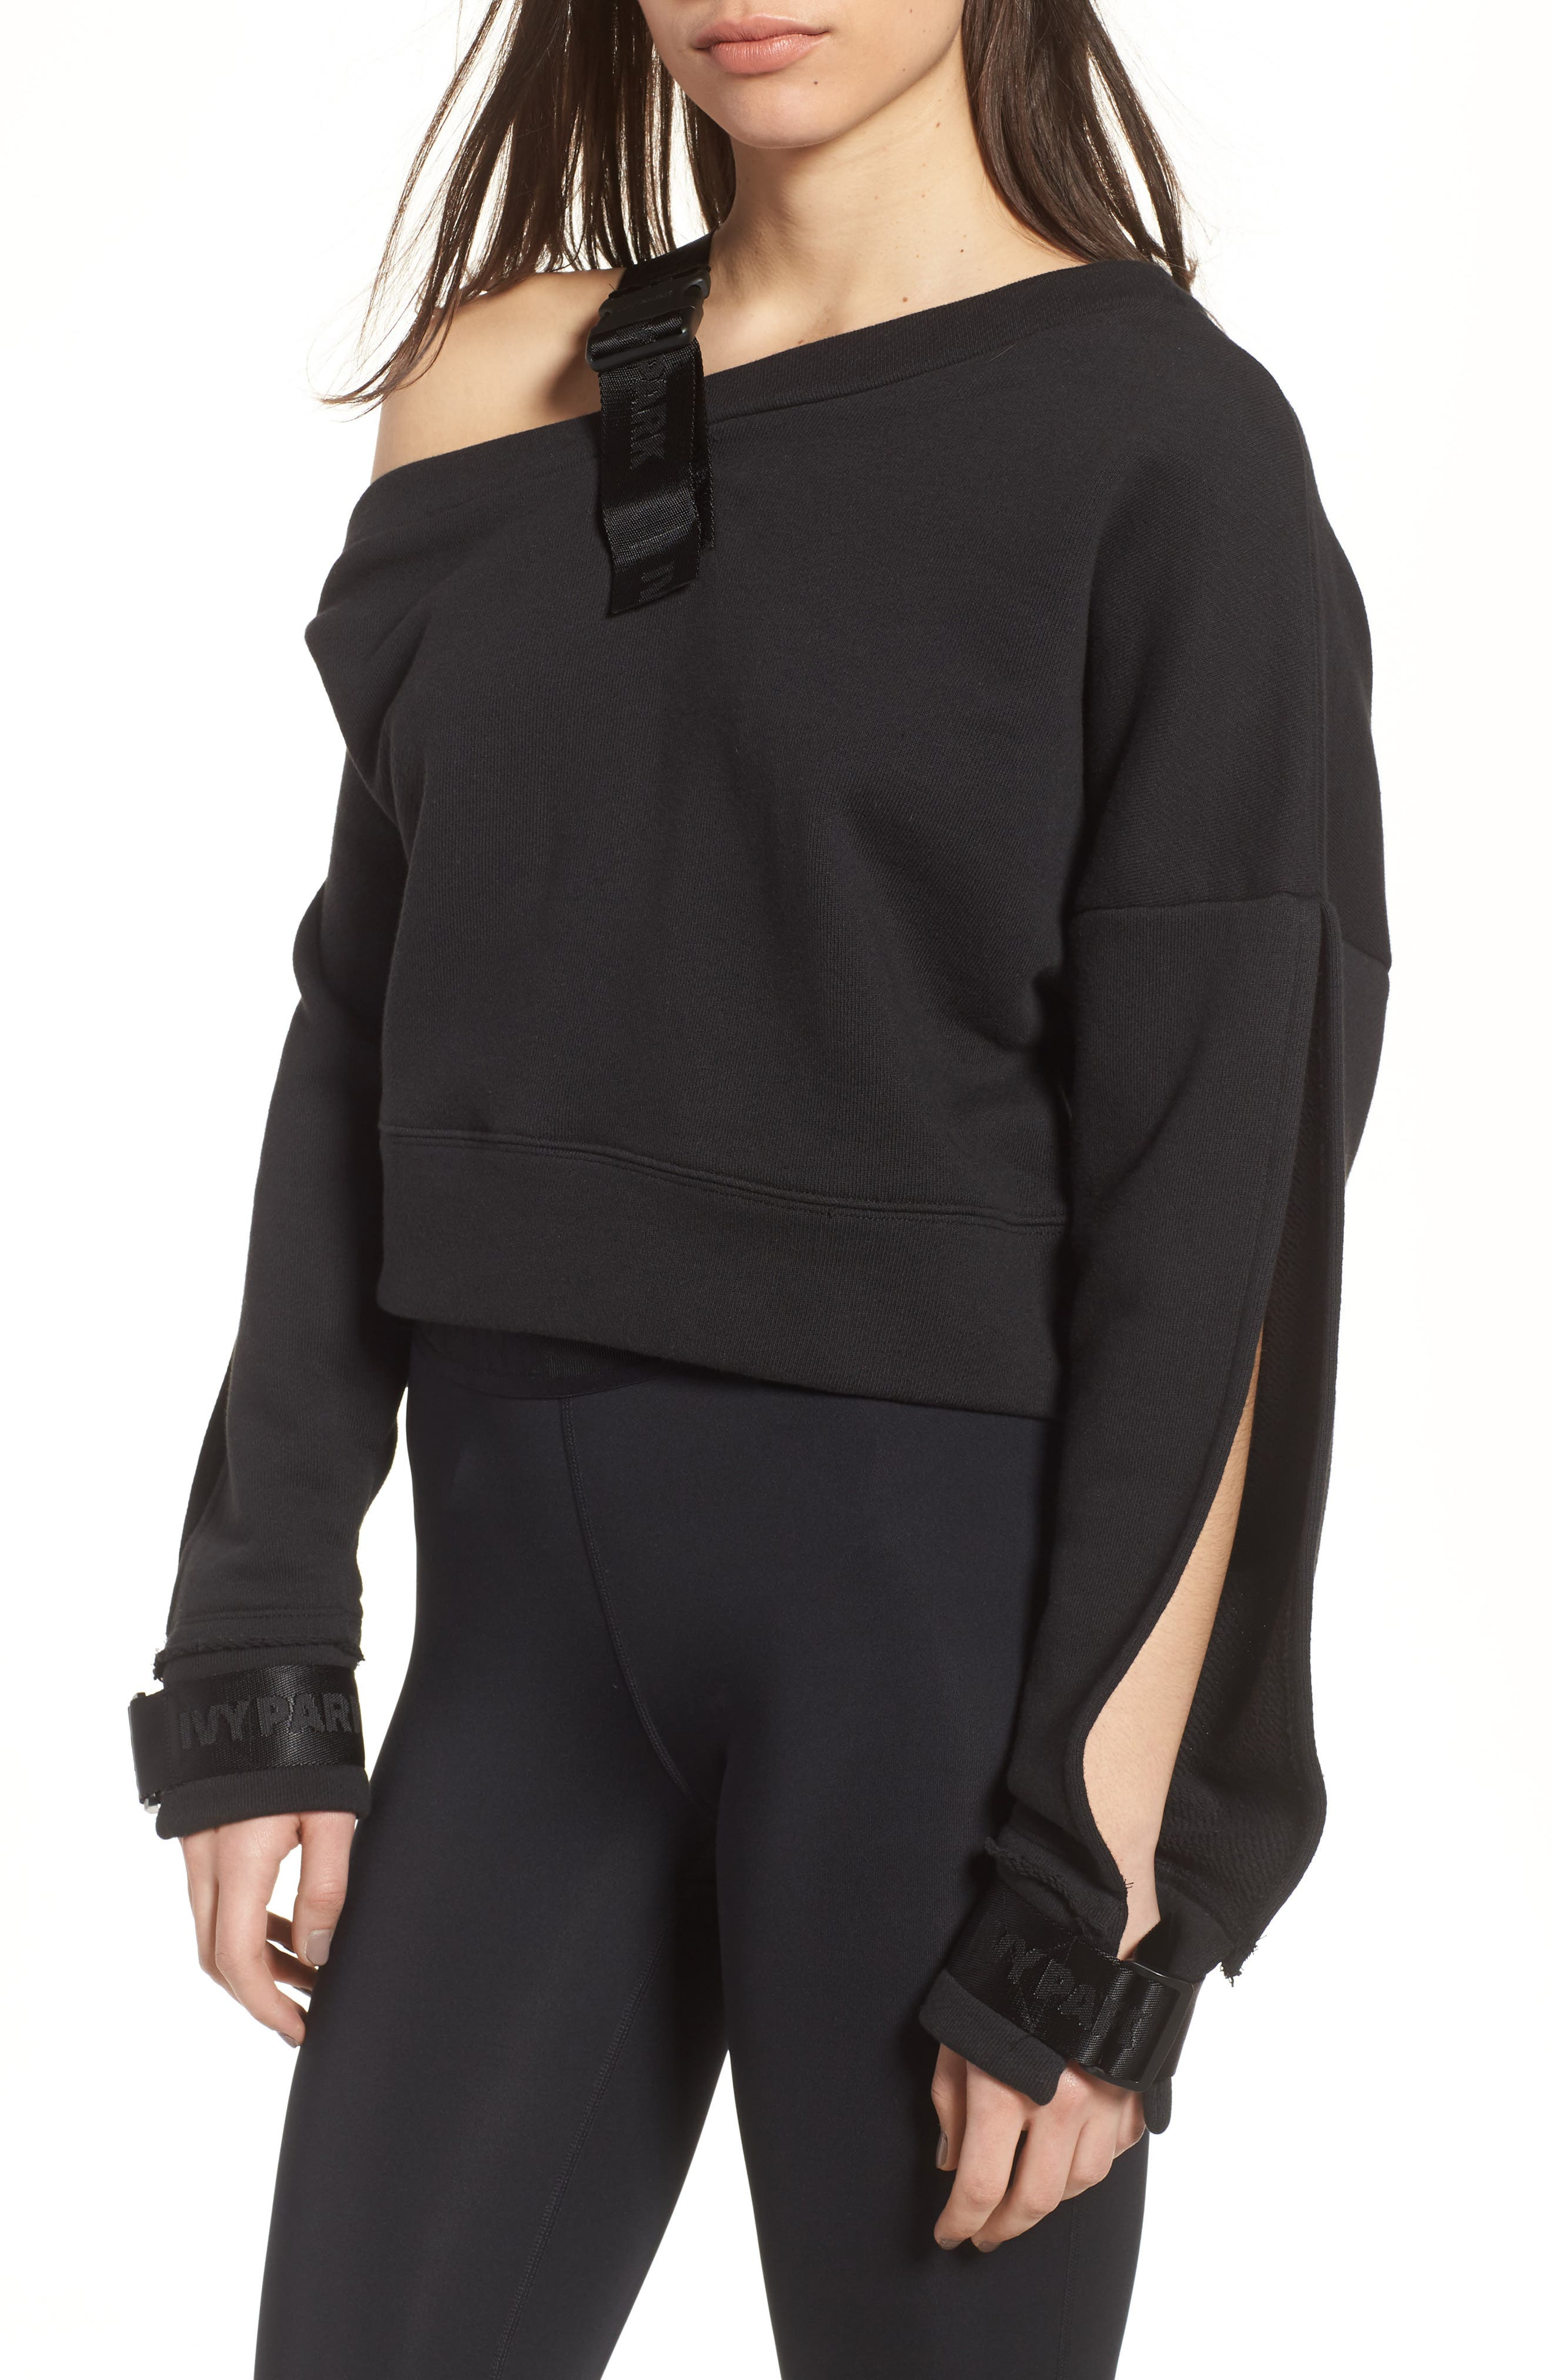 Harness Strap Sweatshirt,                             Main thumbnail 1, color,                             001